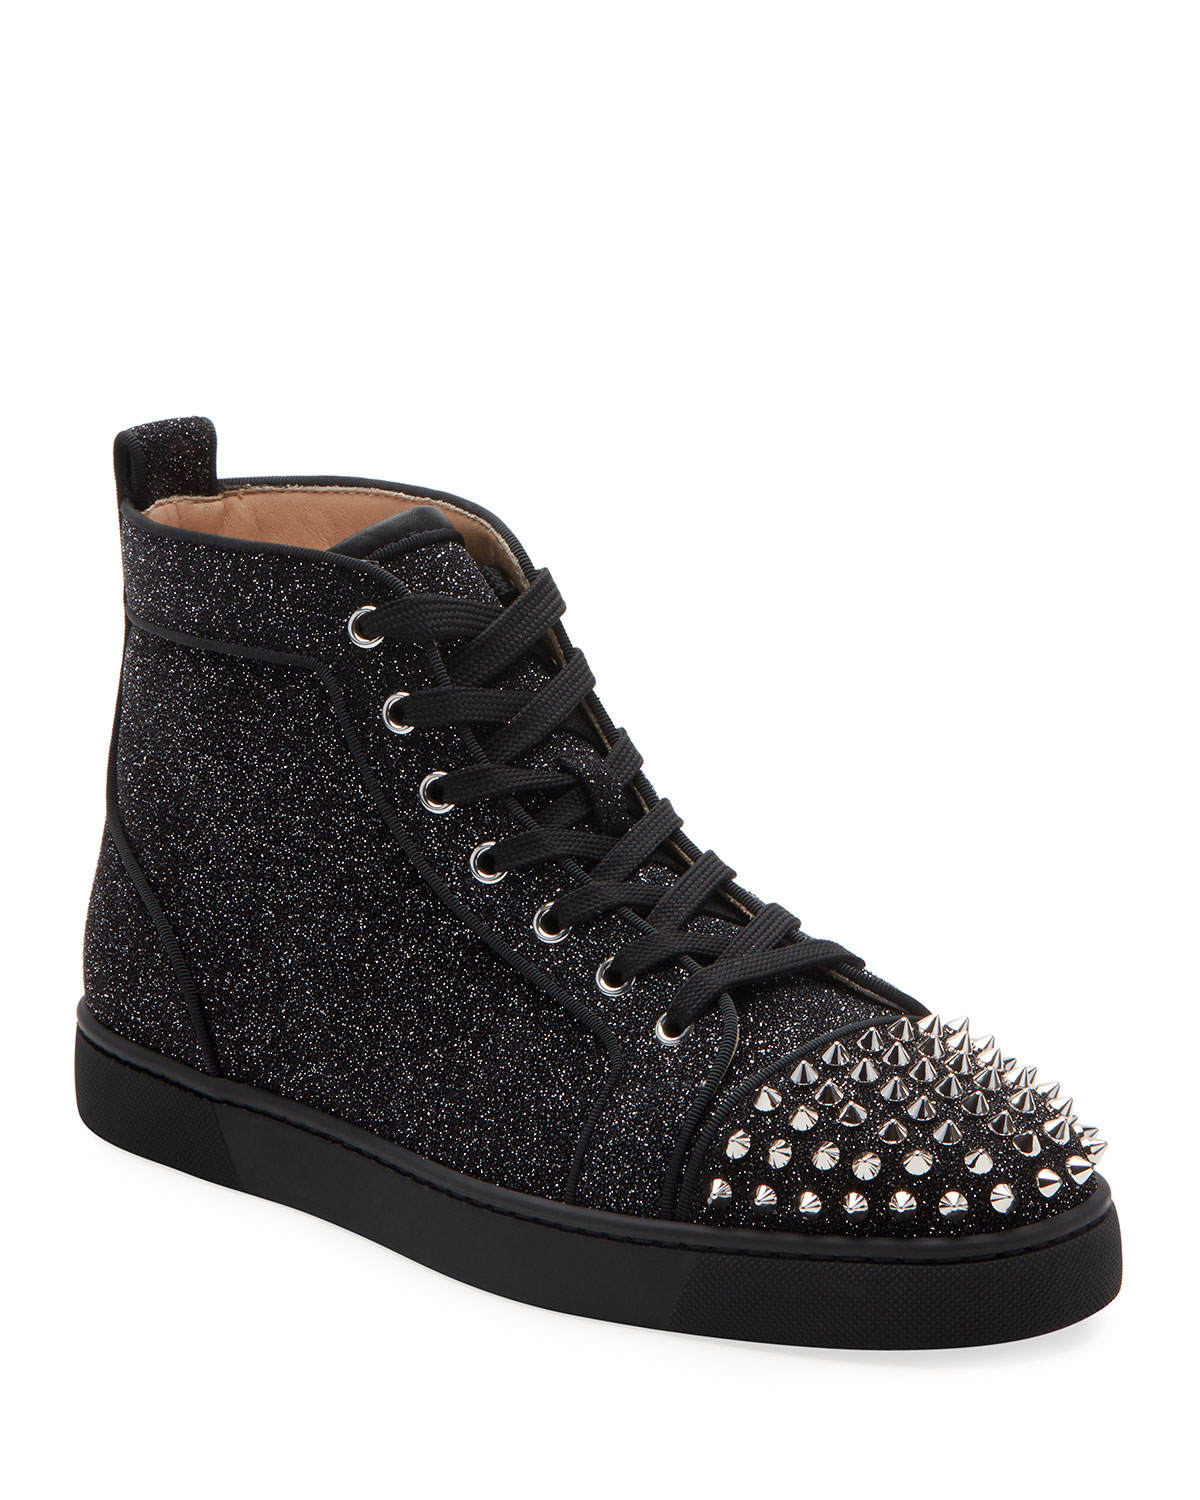 Christian Louboutin Sneakers MEN'S LOU ORLATO METALLIC SPIKED MID-TOP SNEAKERS